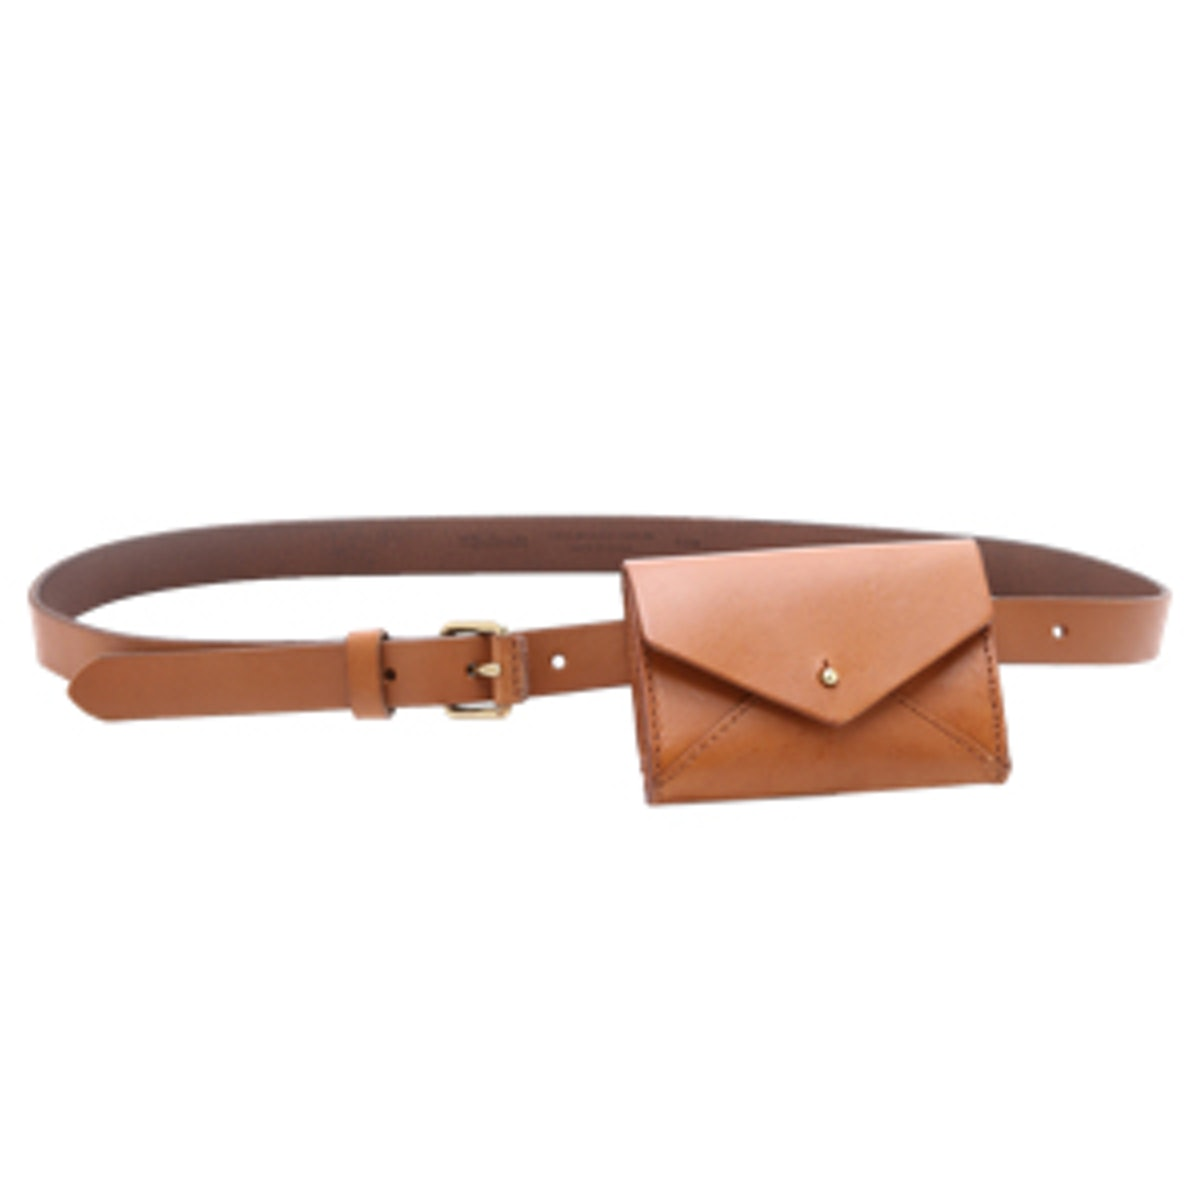 The Pouch Belt